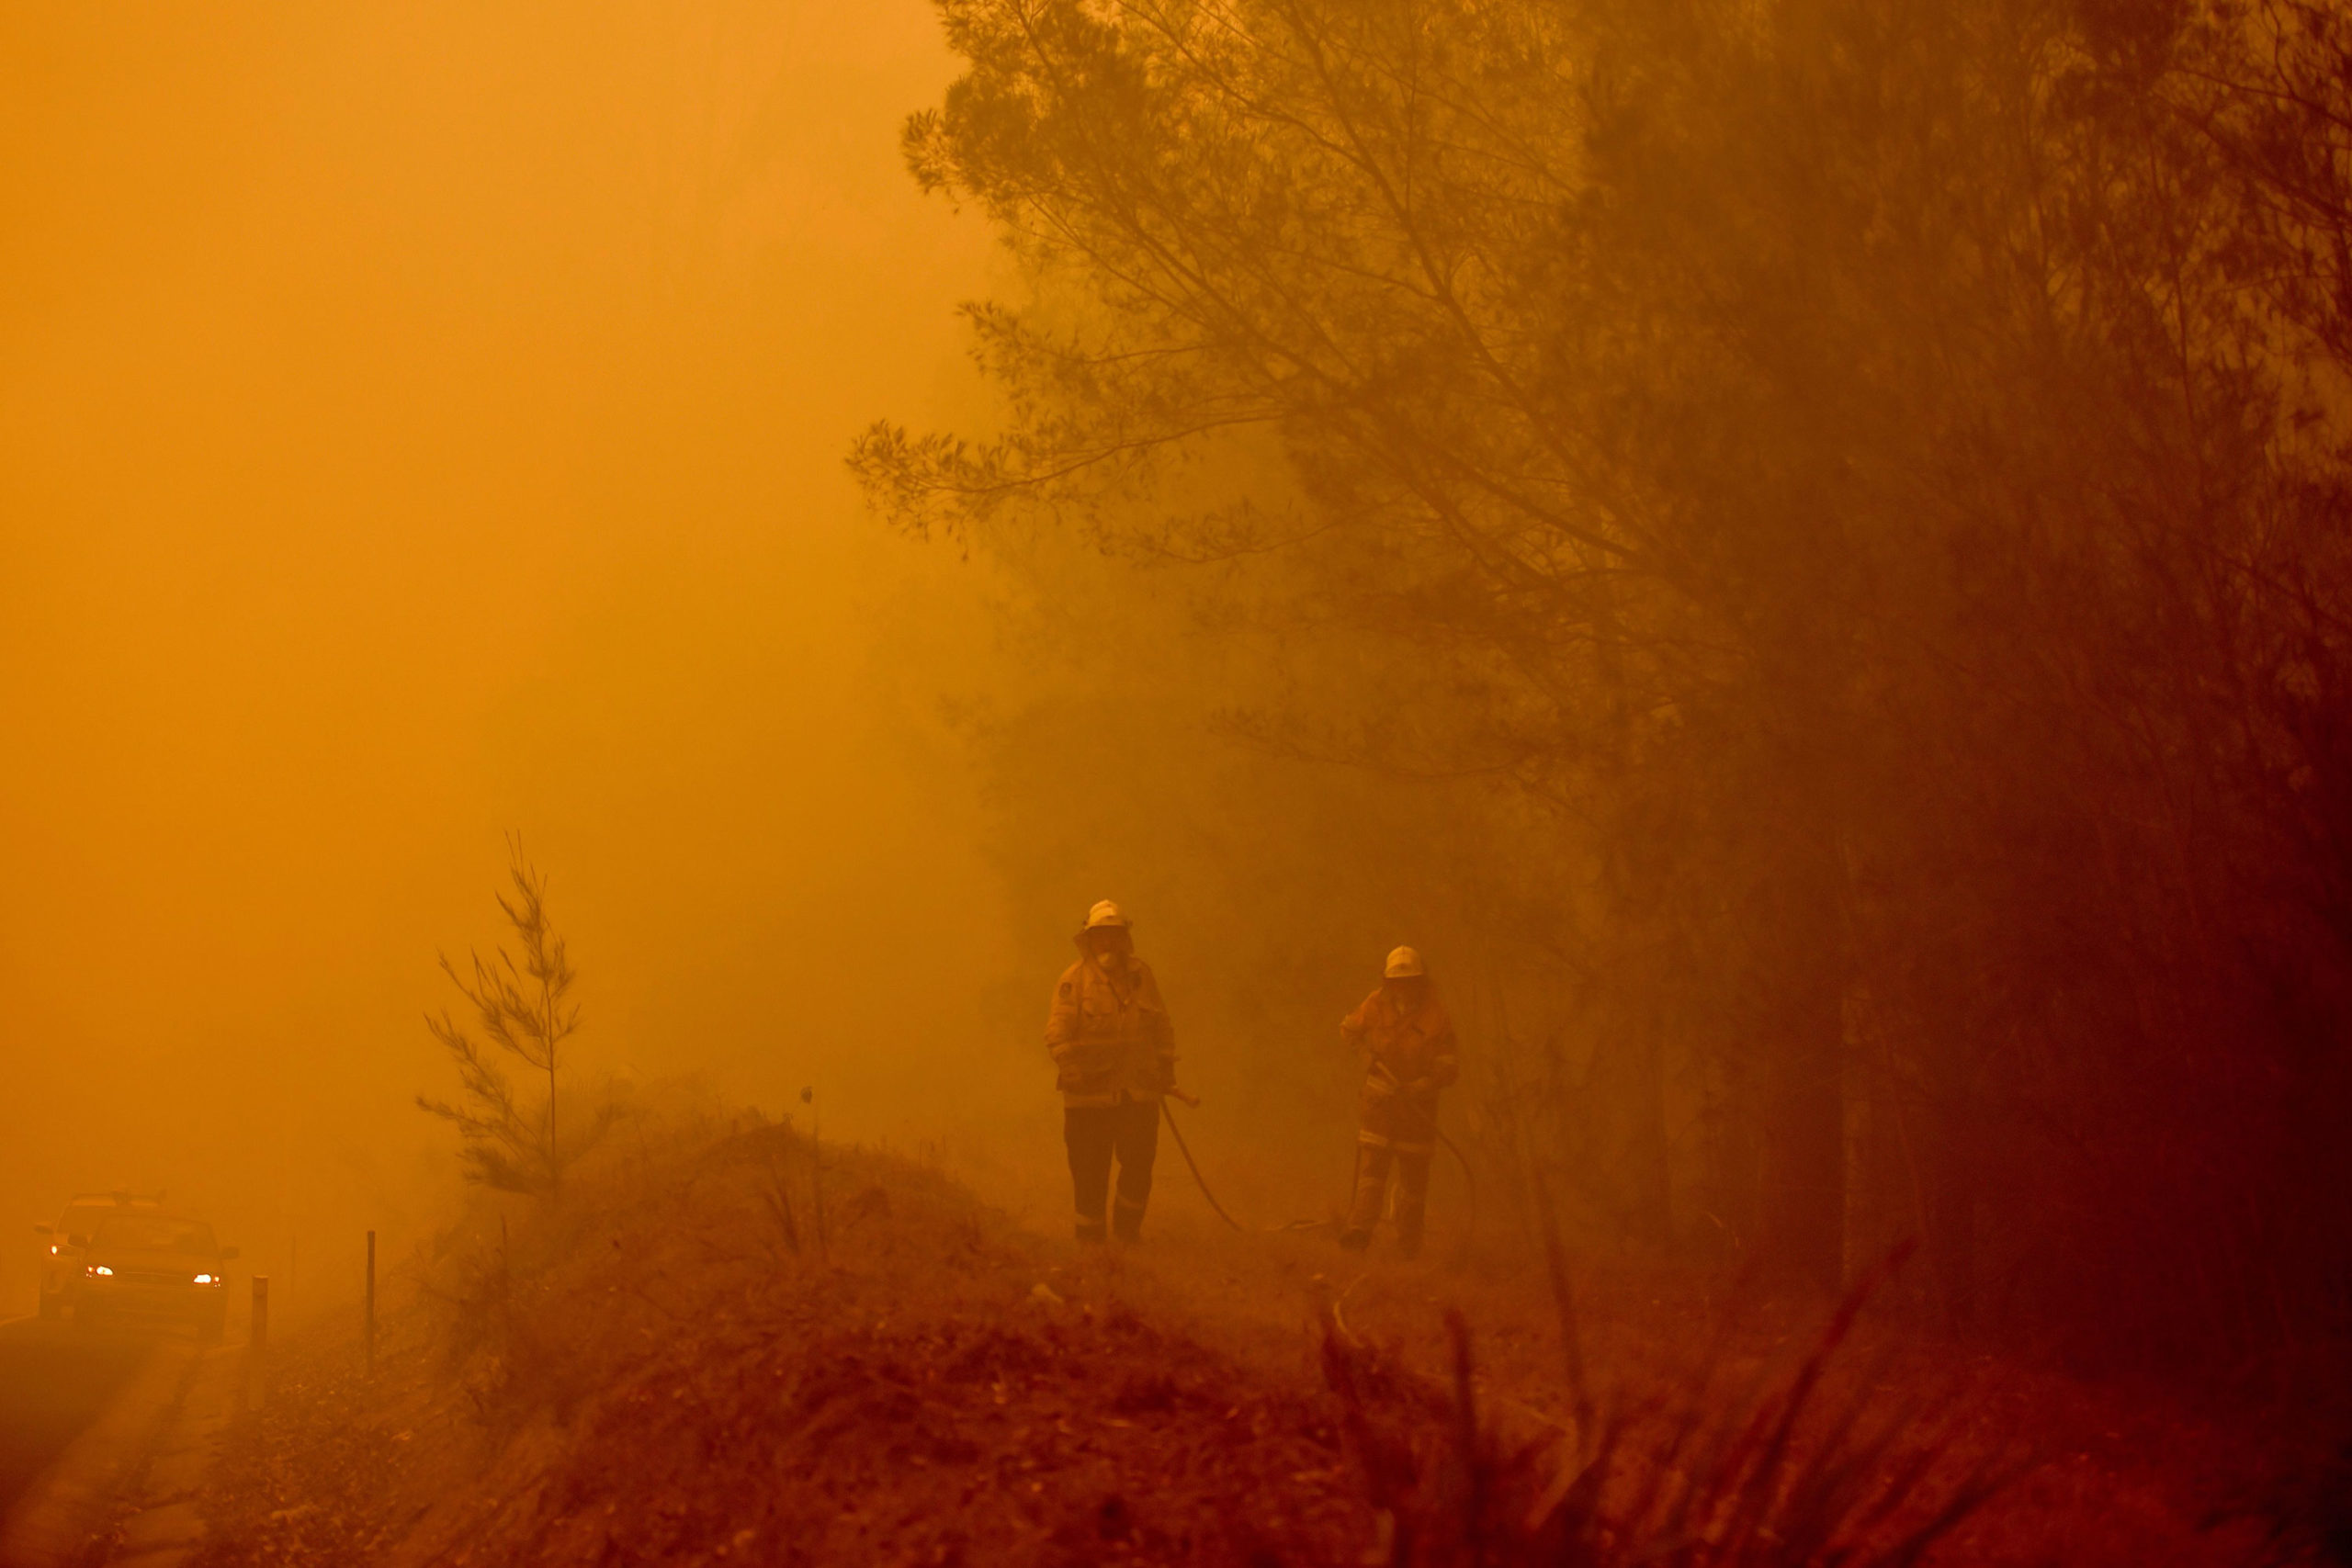 Firefighters tackle a bushfire in thick smoke in the town of Moruya, south of Batemans Bay, in New South Wales on Saturday.